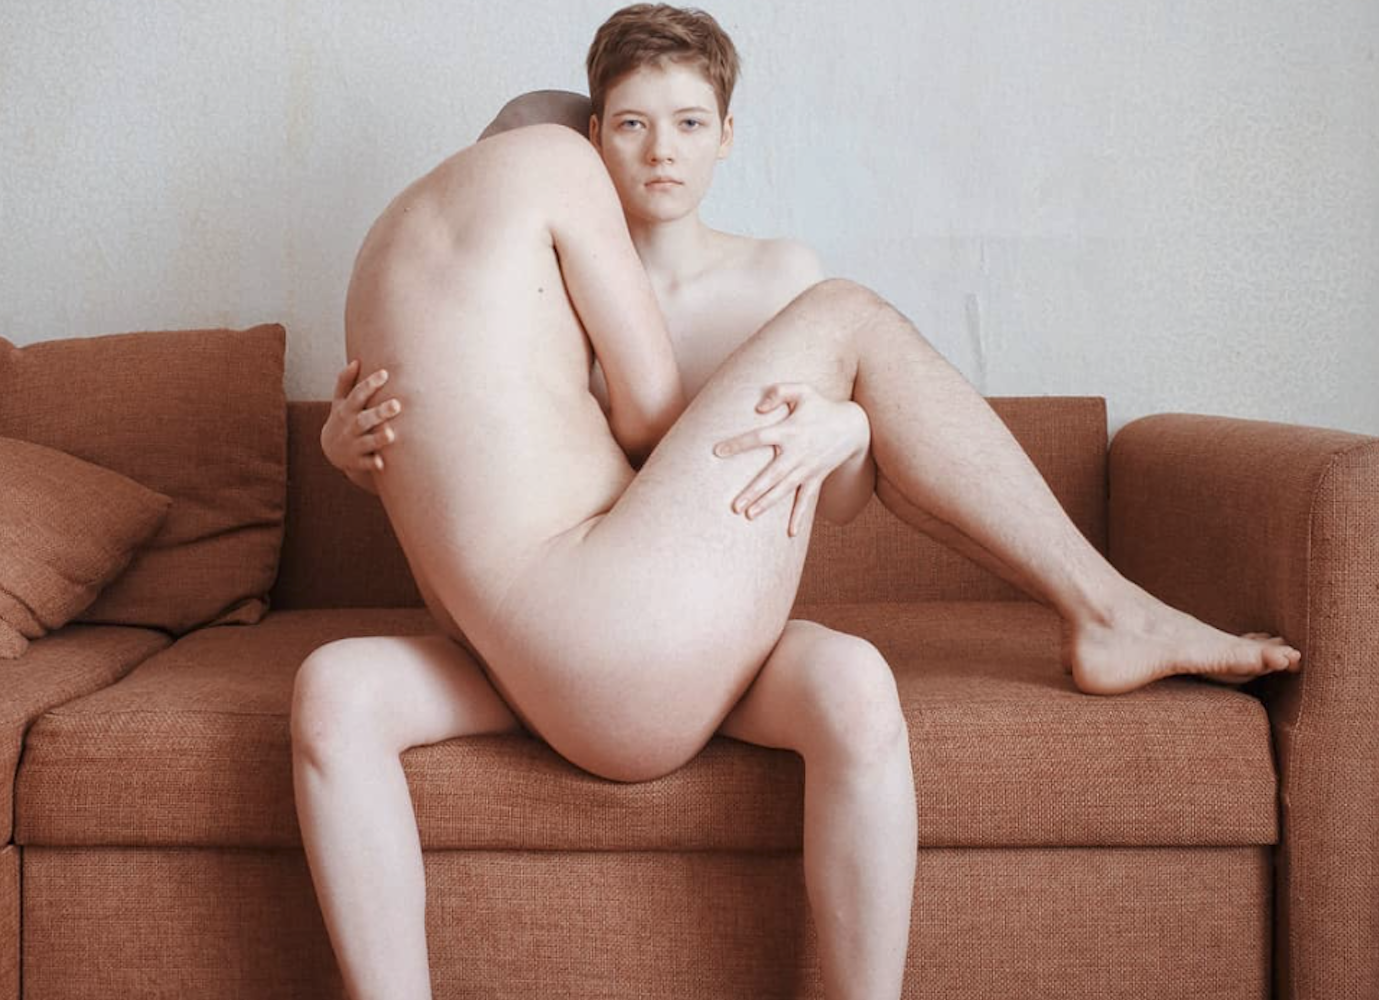 One Russian photographer turns his everyday routine into a performance in search of gender liberation